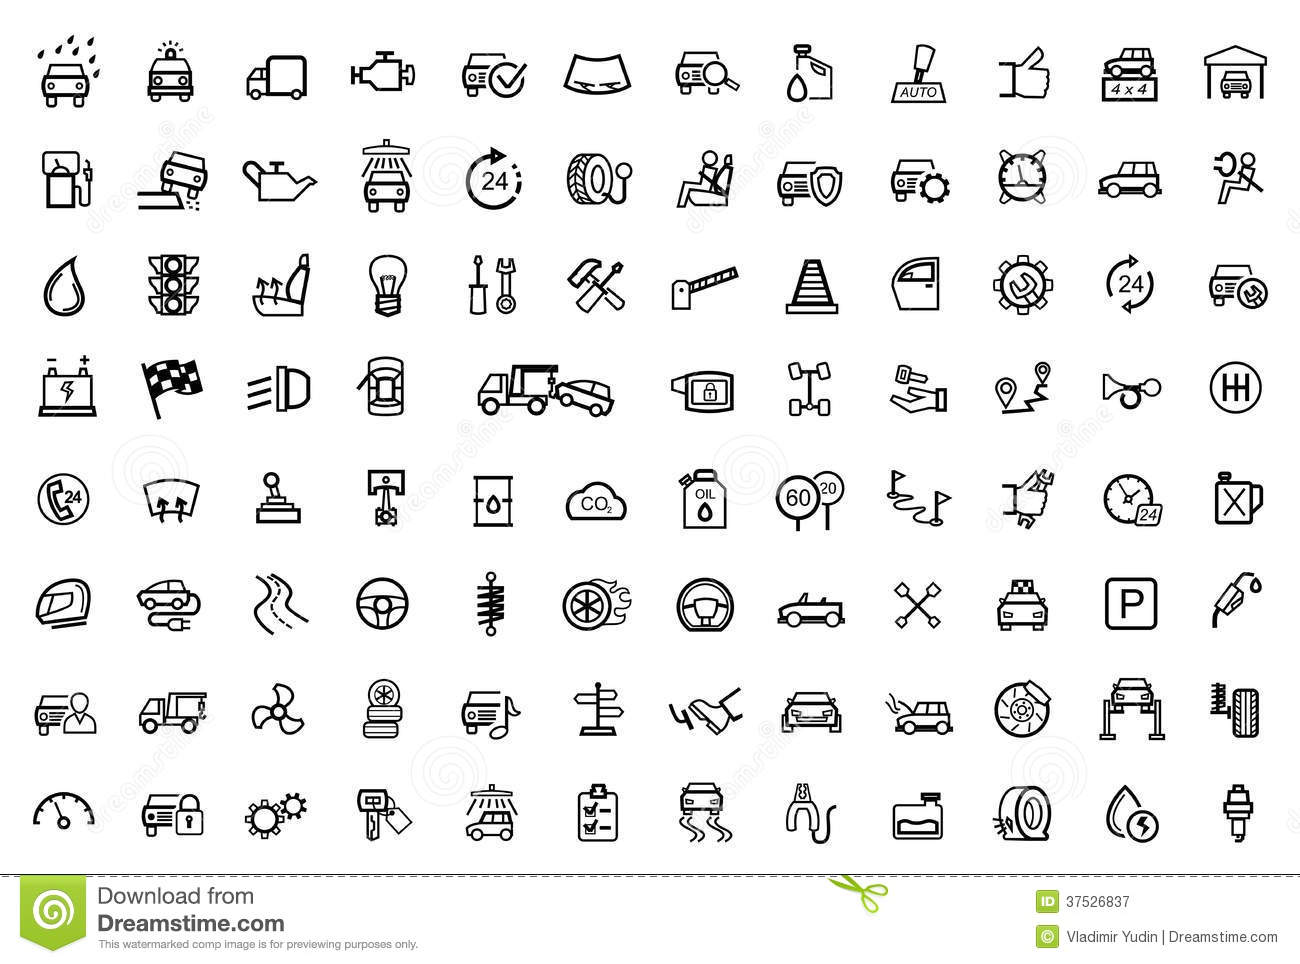 Vision X Light Wiring Diagram Vector Black Auto Icons Set Stock Vector Illustration Of